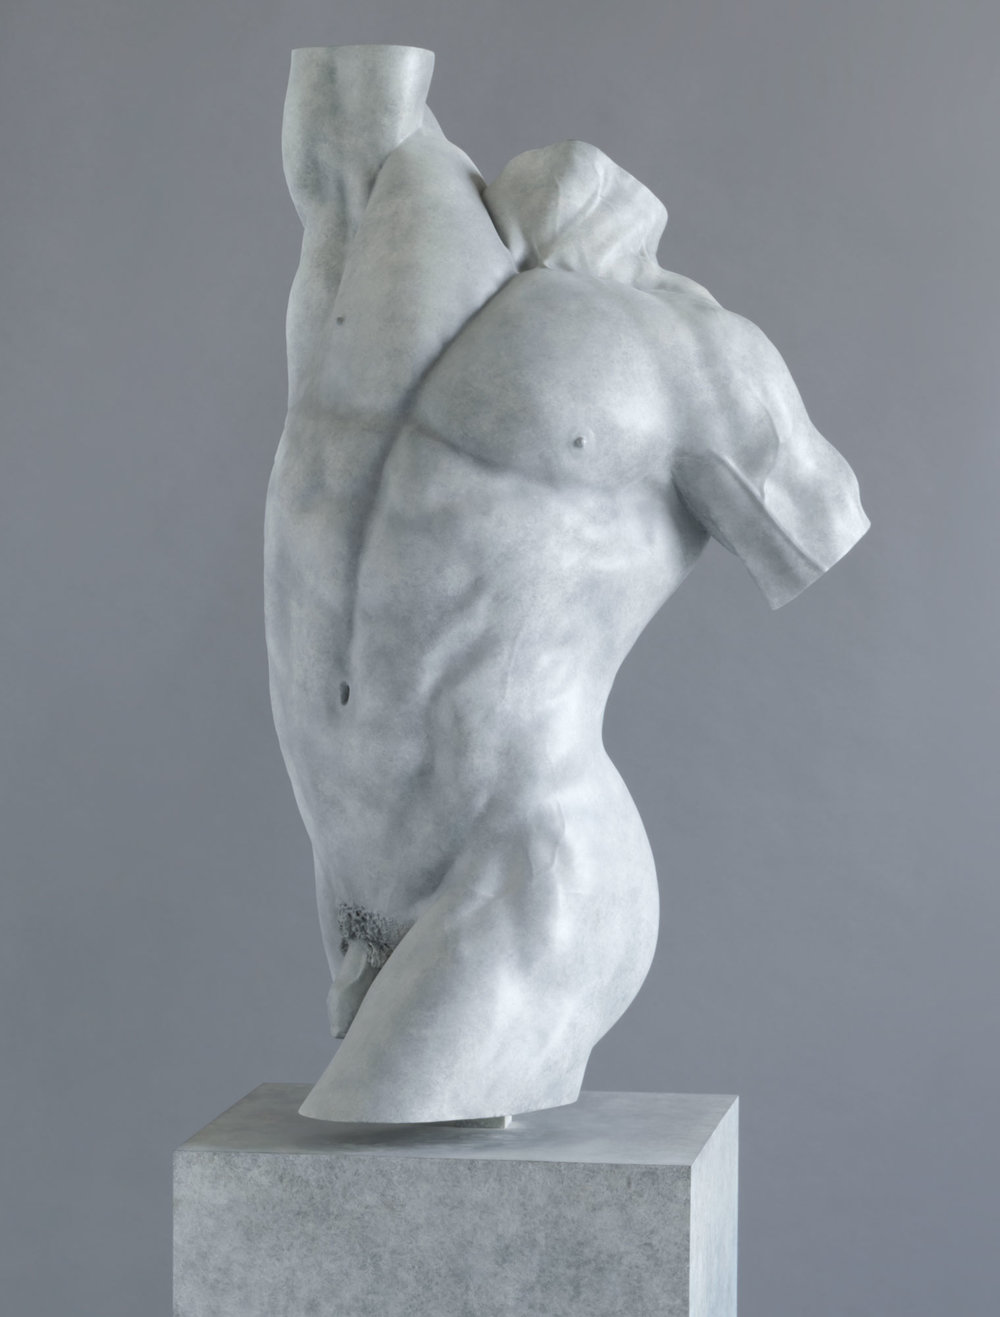 3. Apollo by Nick Bibby, Edition of 9, 83 x 21 x 24 inches (211 x 53 x 61cm).jpg